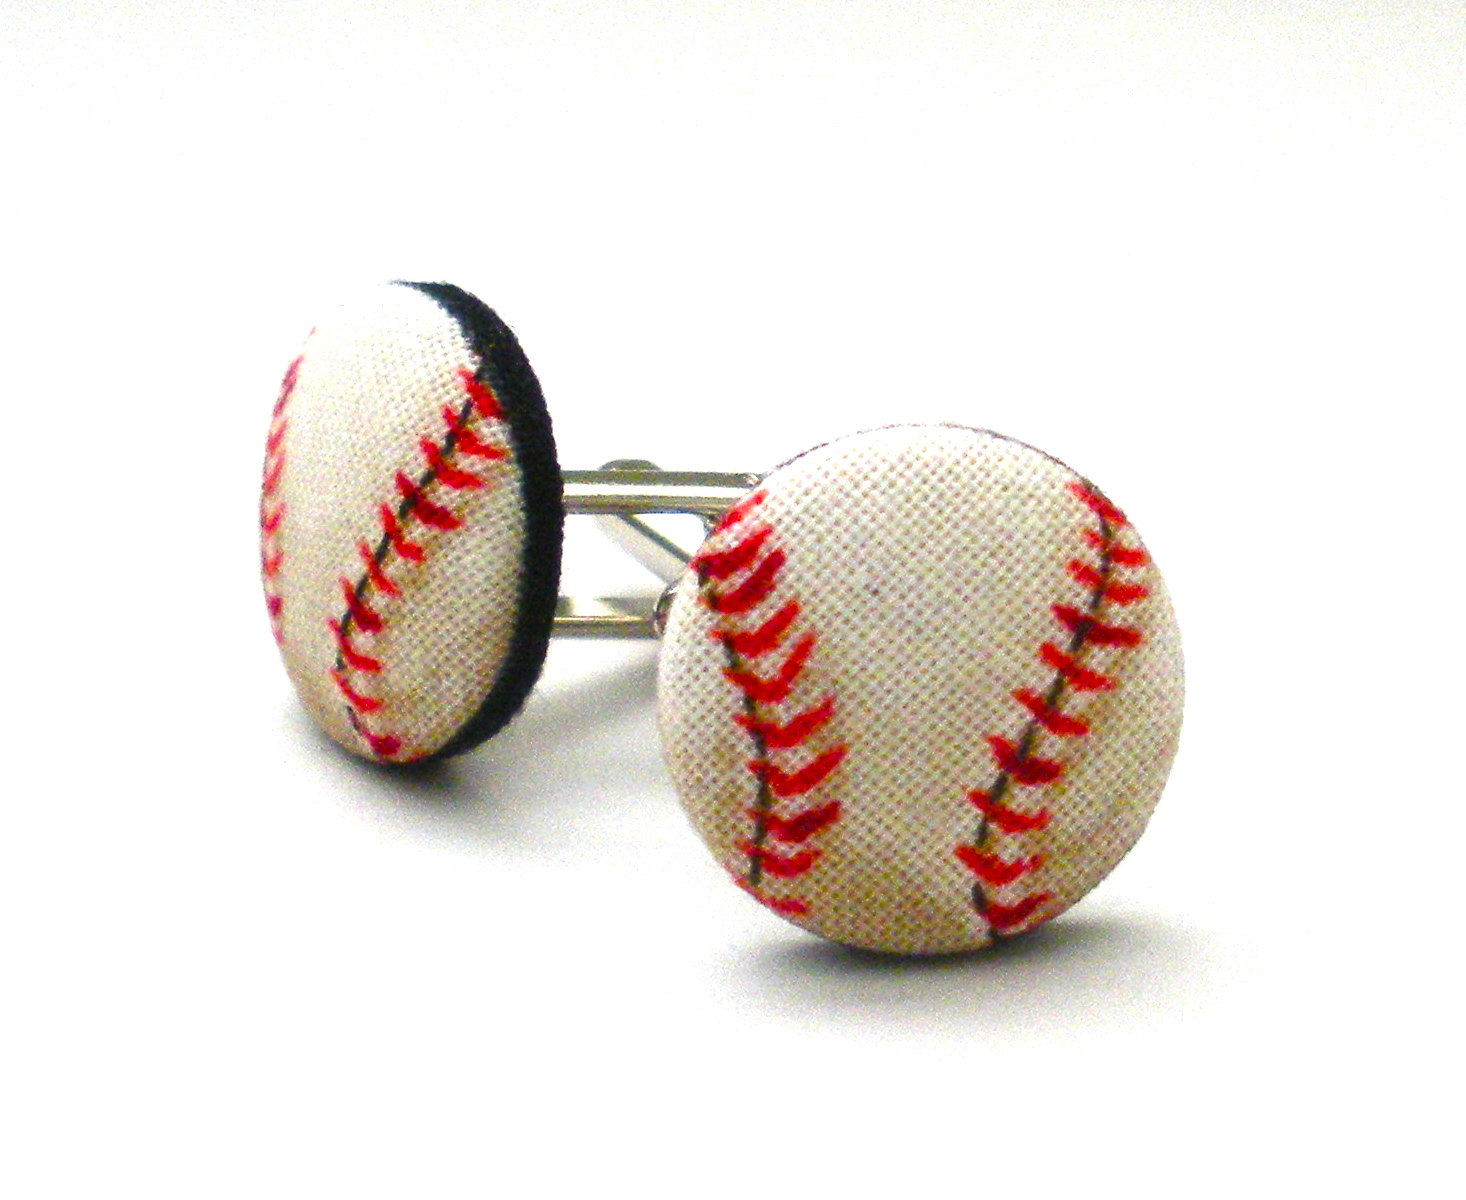 baseball cuff links from the heart by amber